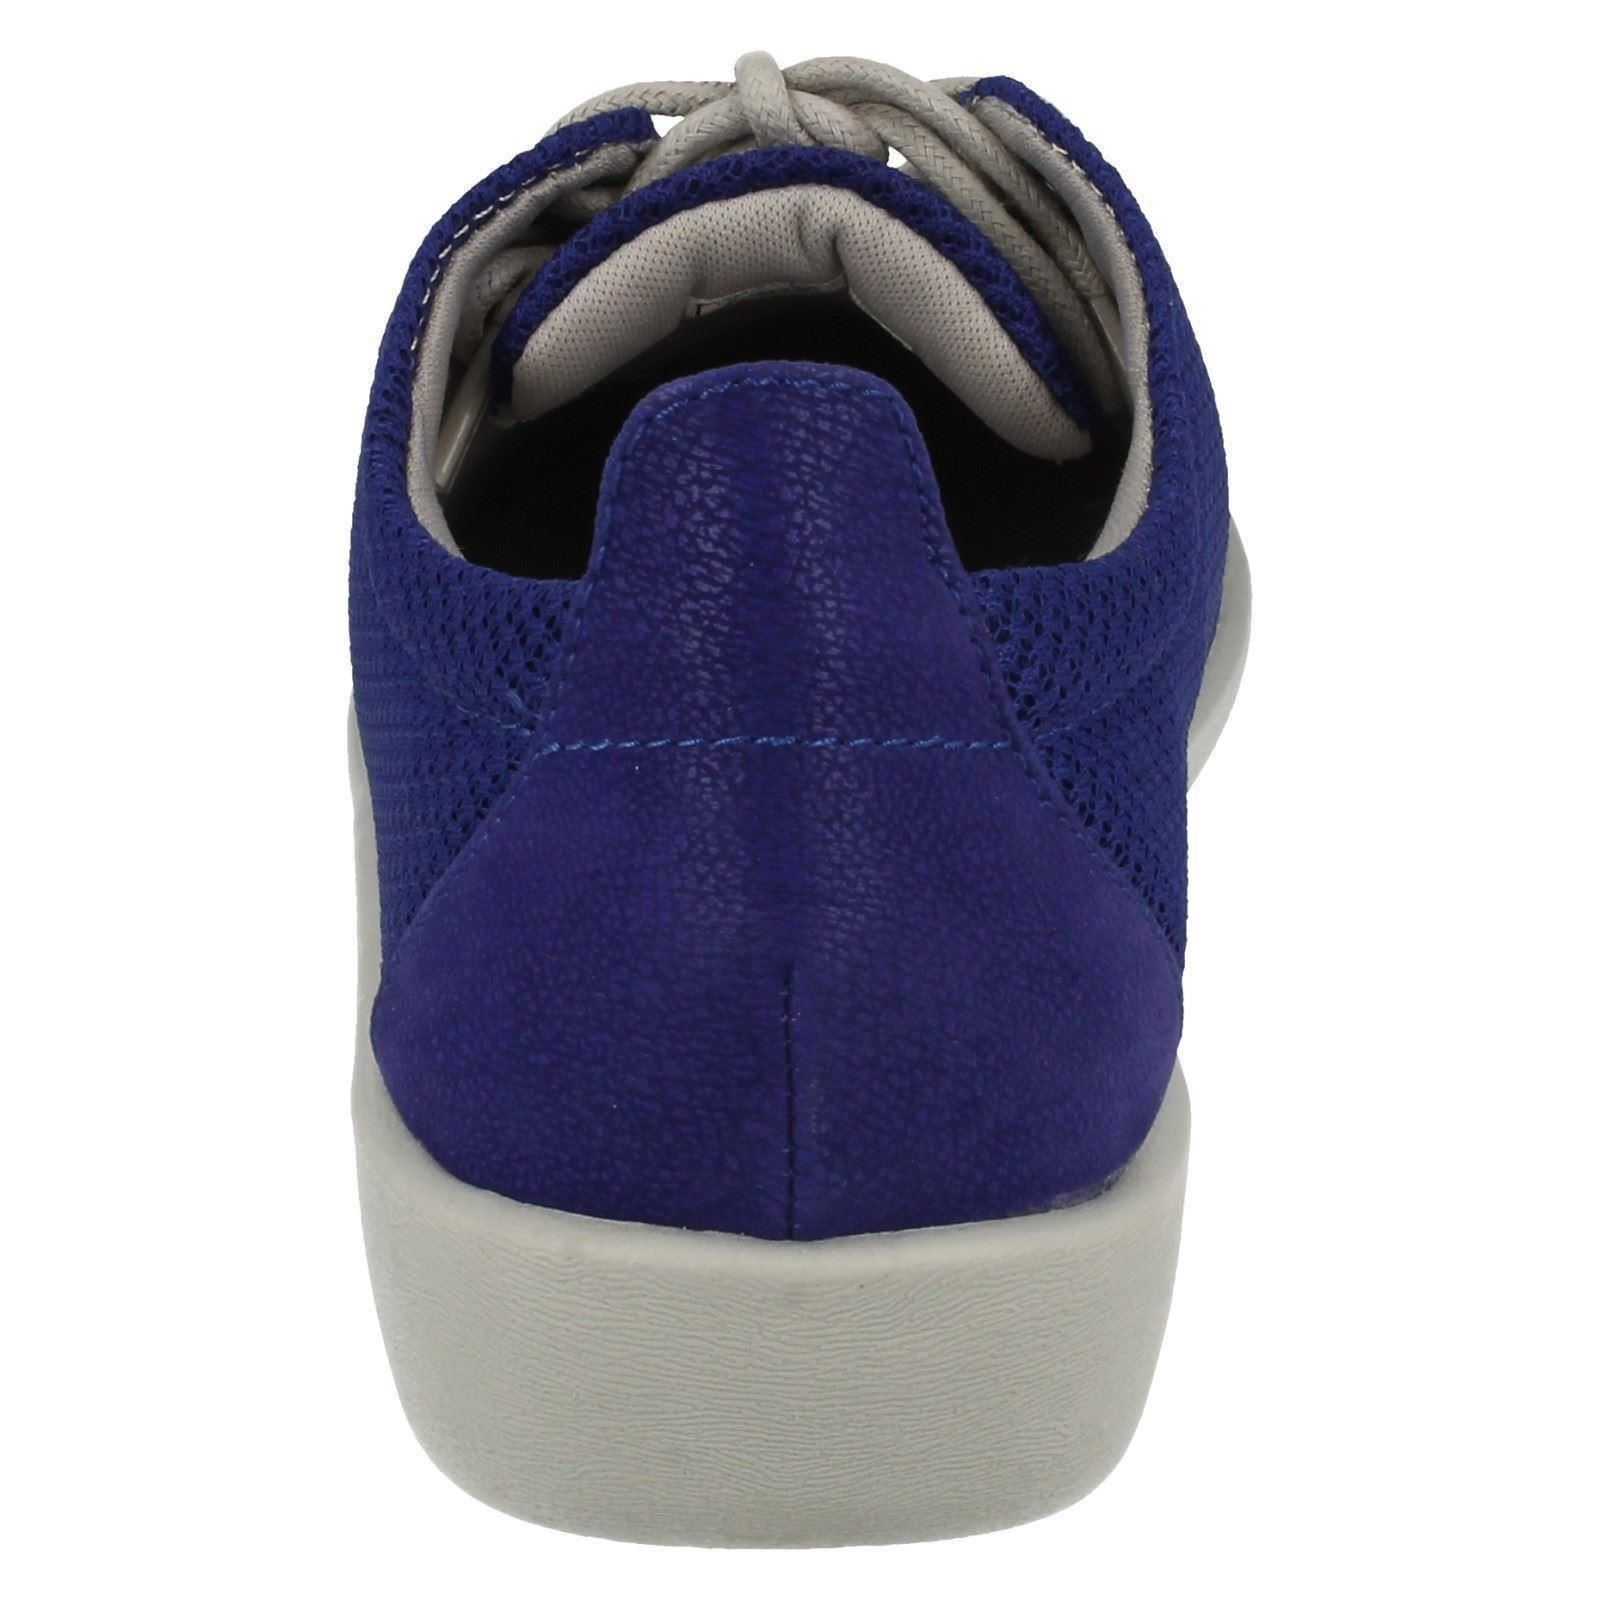 Ladies Clarks Cloud Steppers Lace Up Shoes /'Sillian Tino/'